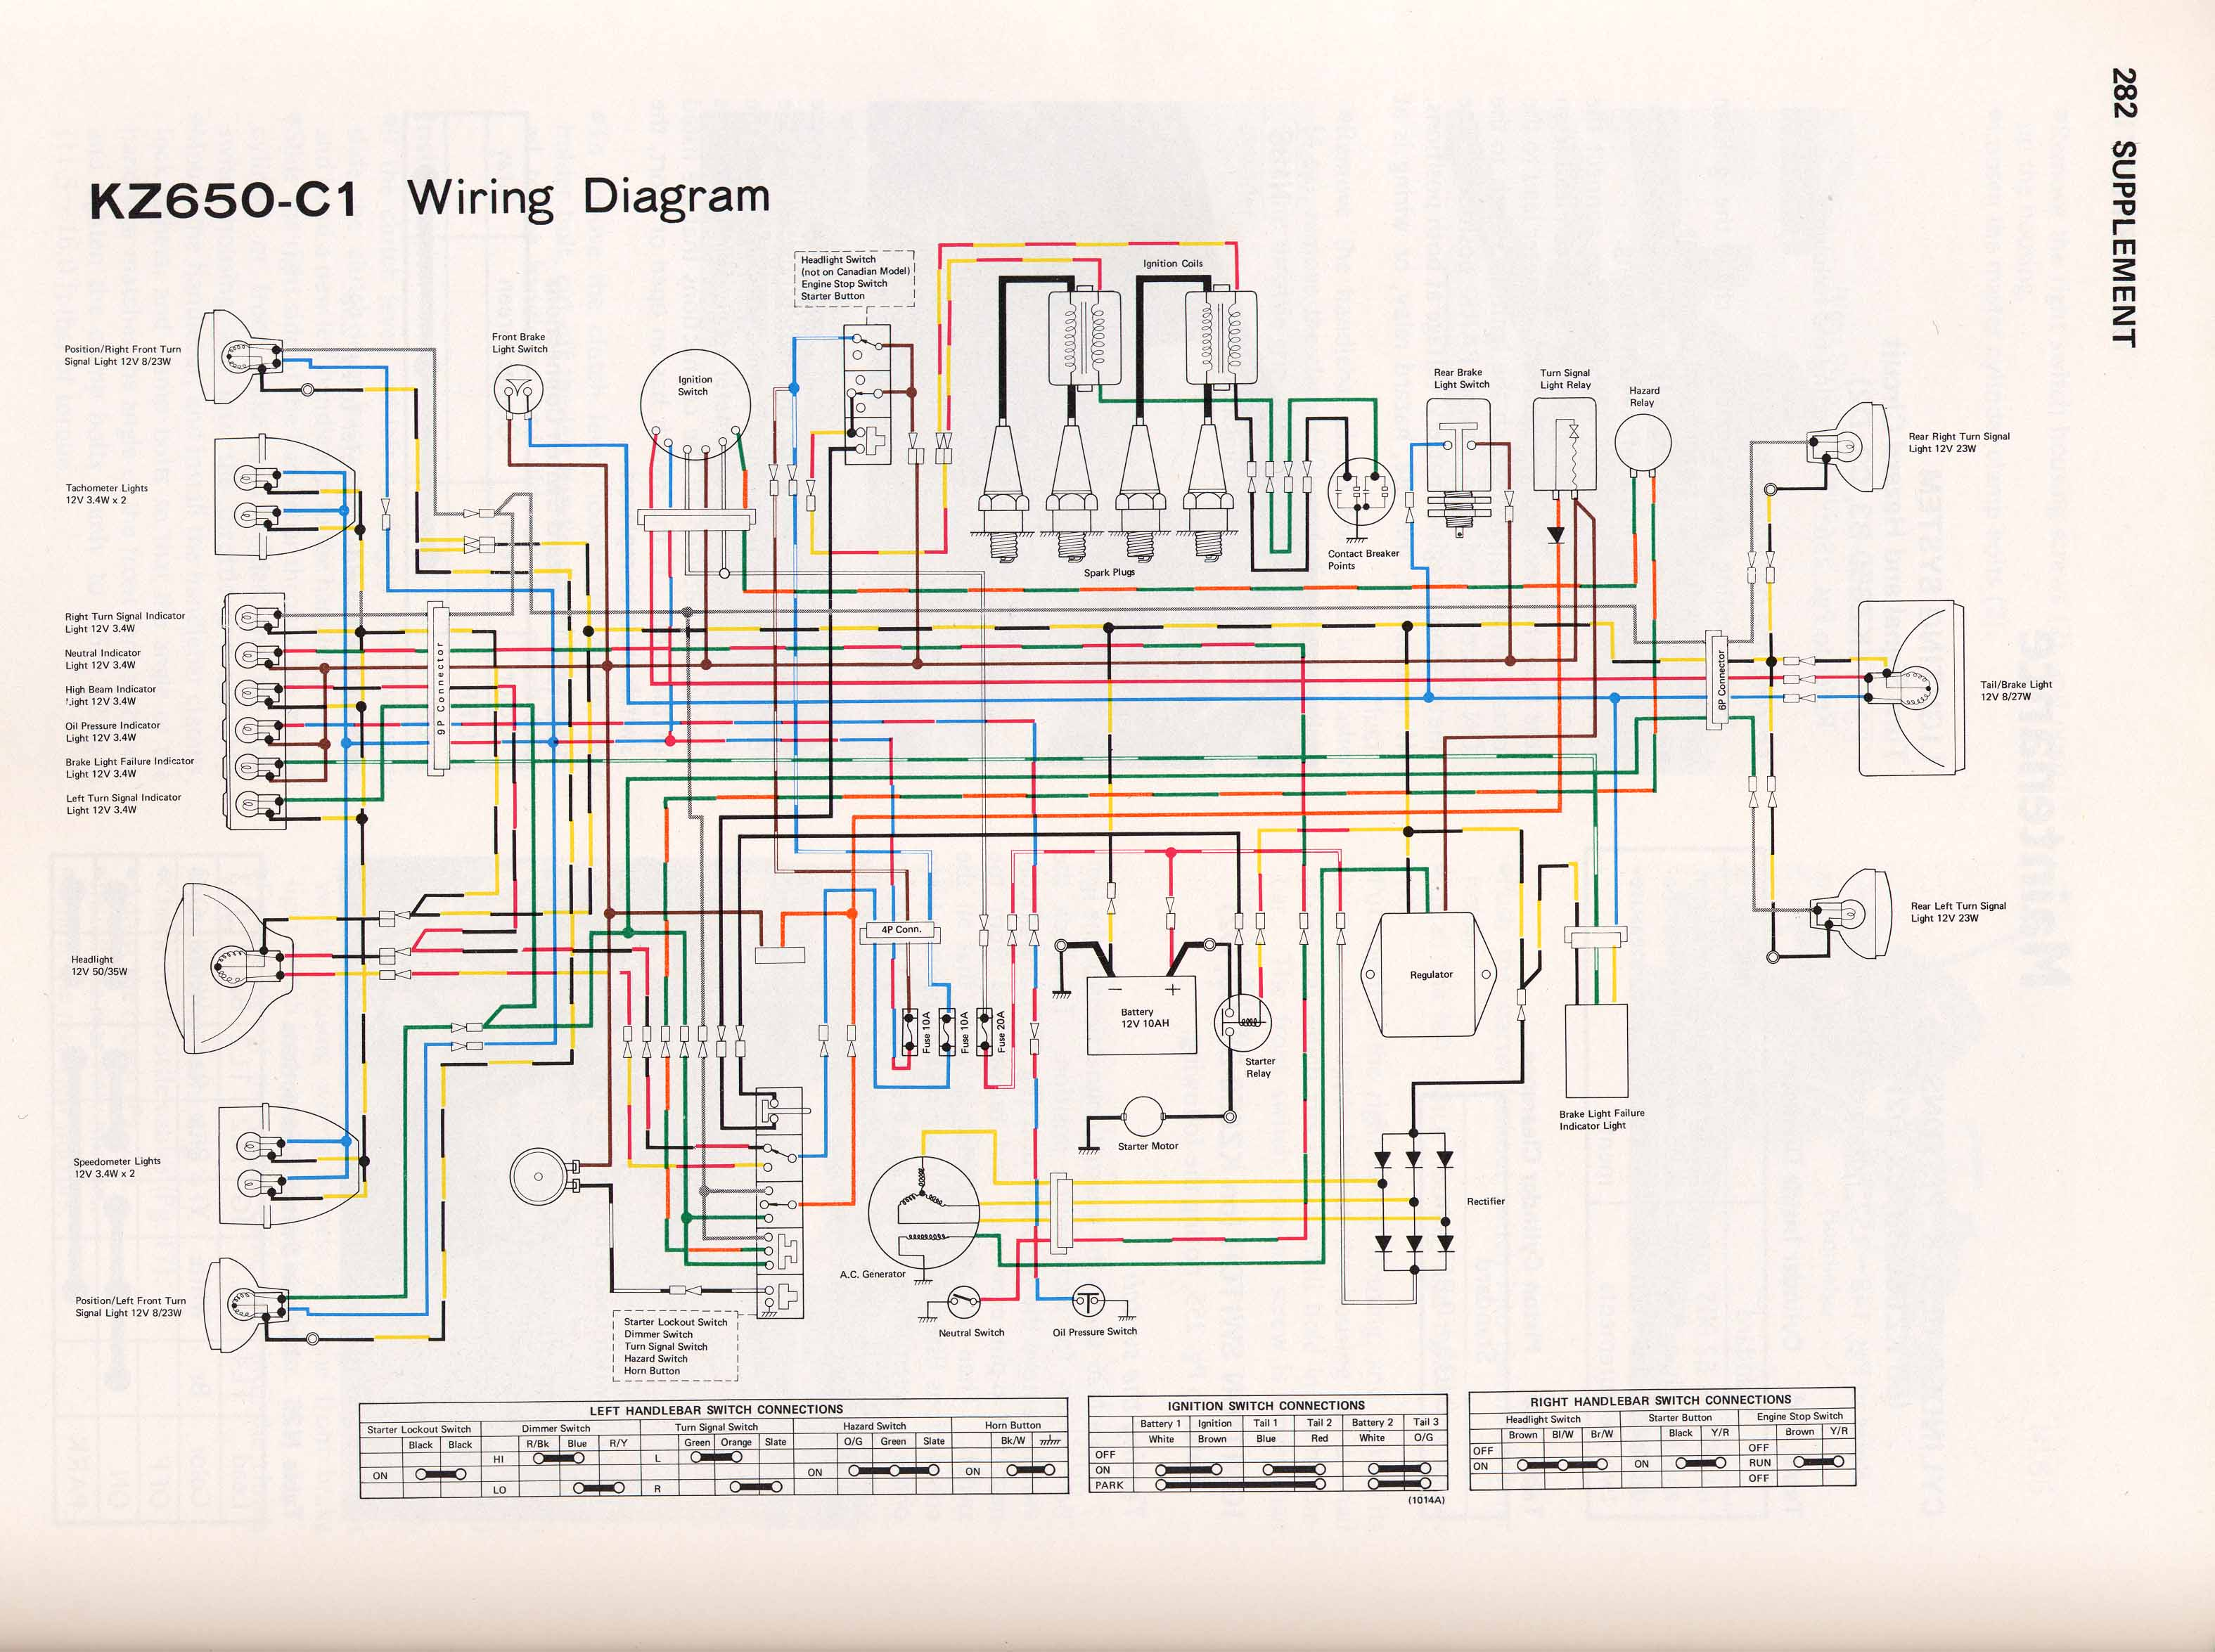 kz1000 wiring diagram yamaha xs400 1980 kz1000 wiring diagram color 1977 kz 650 c1 #9